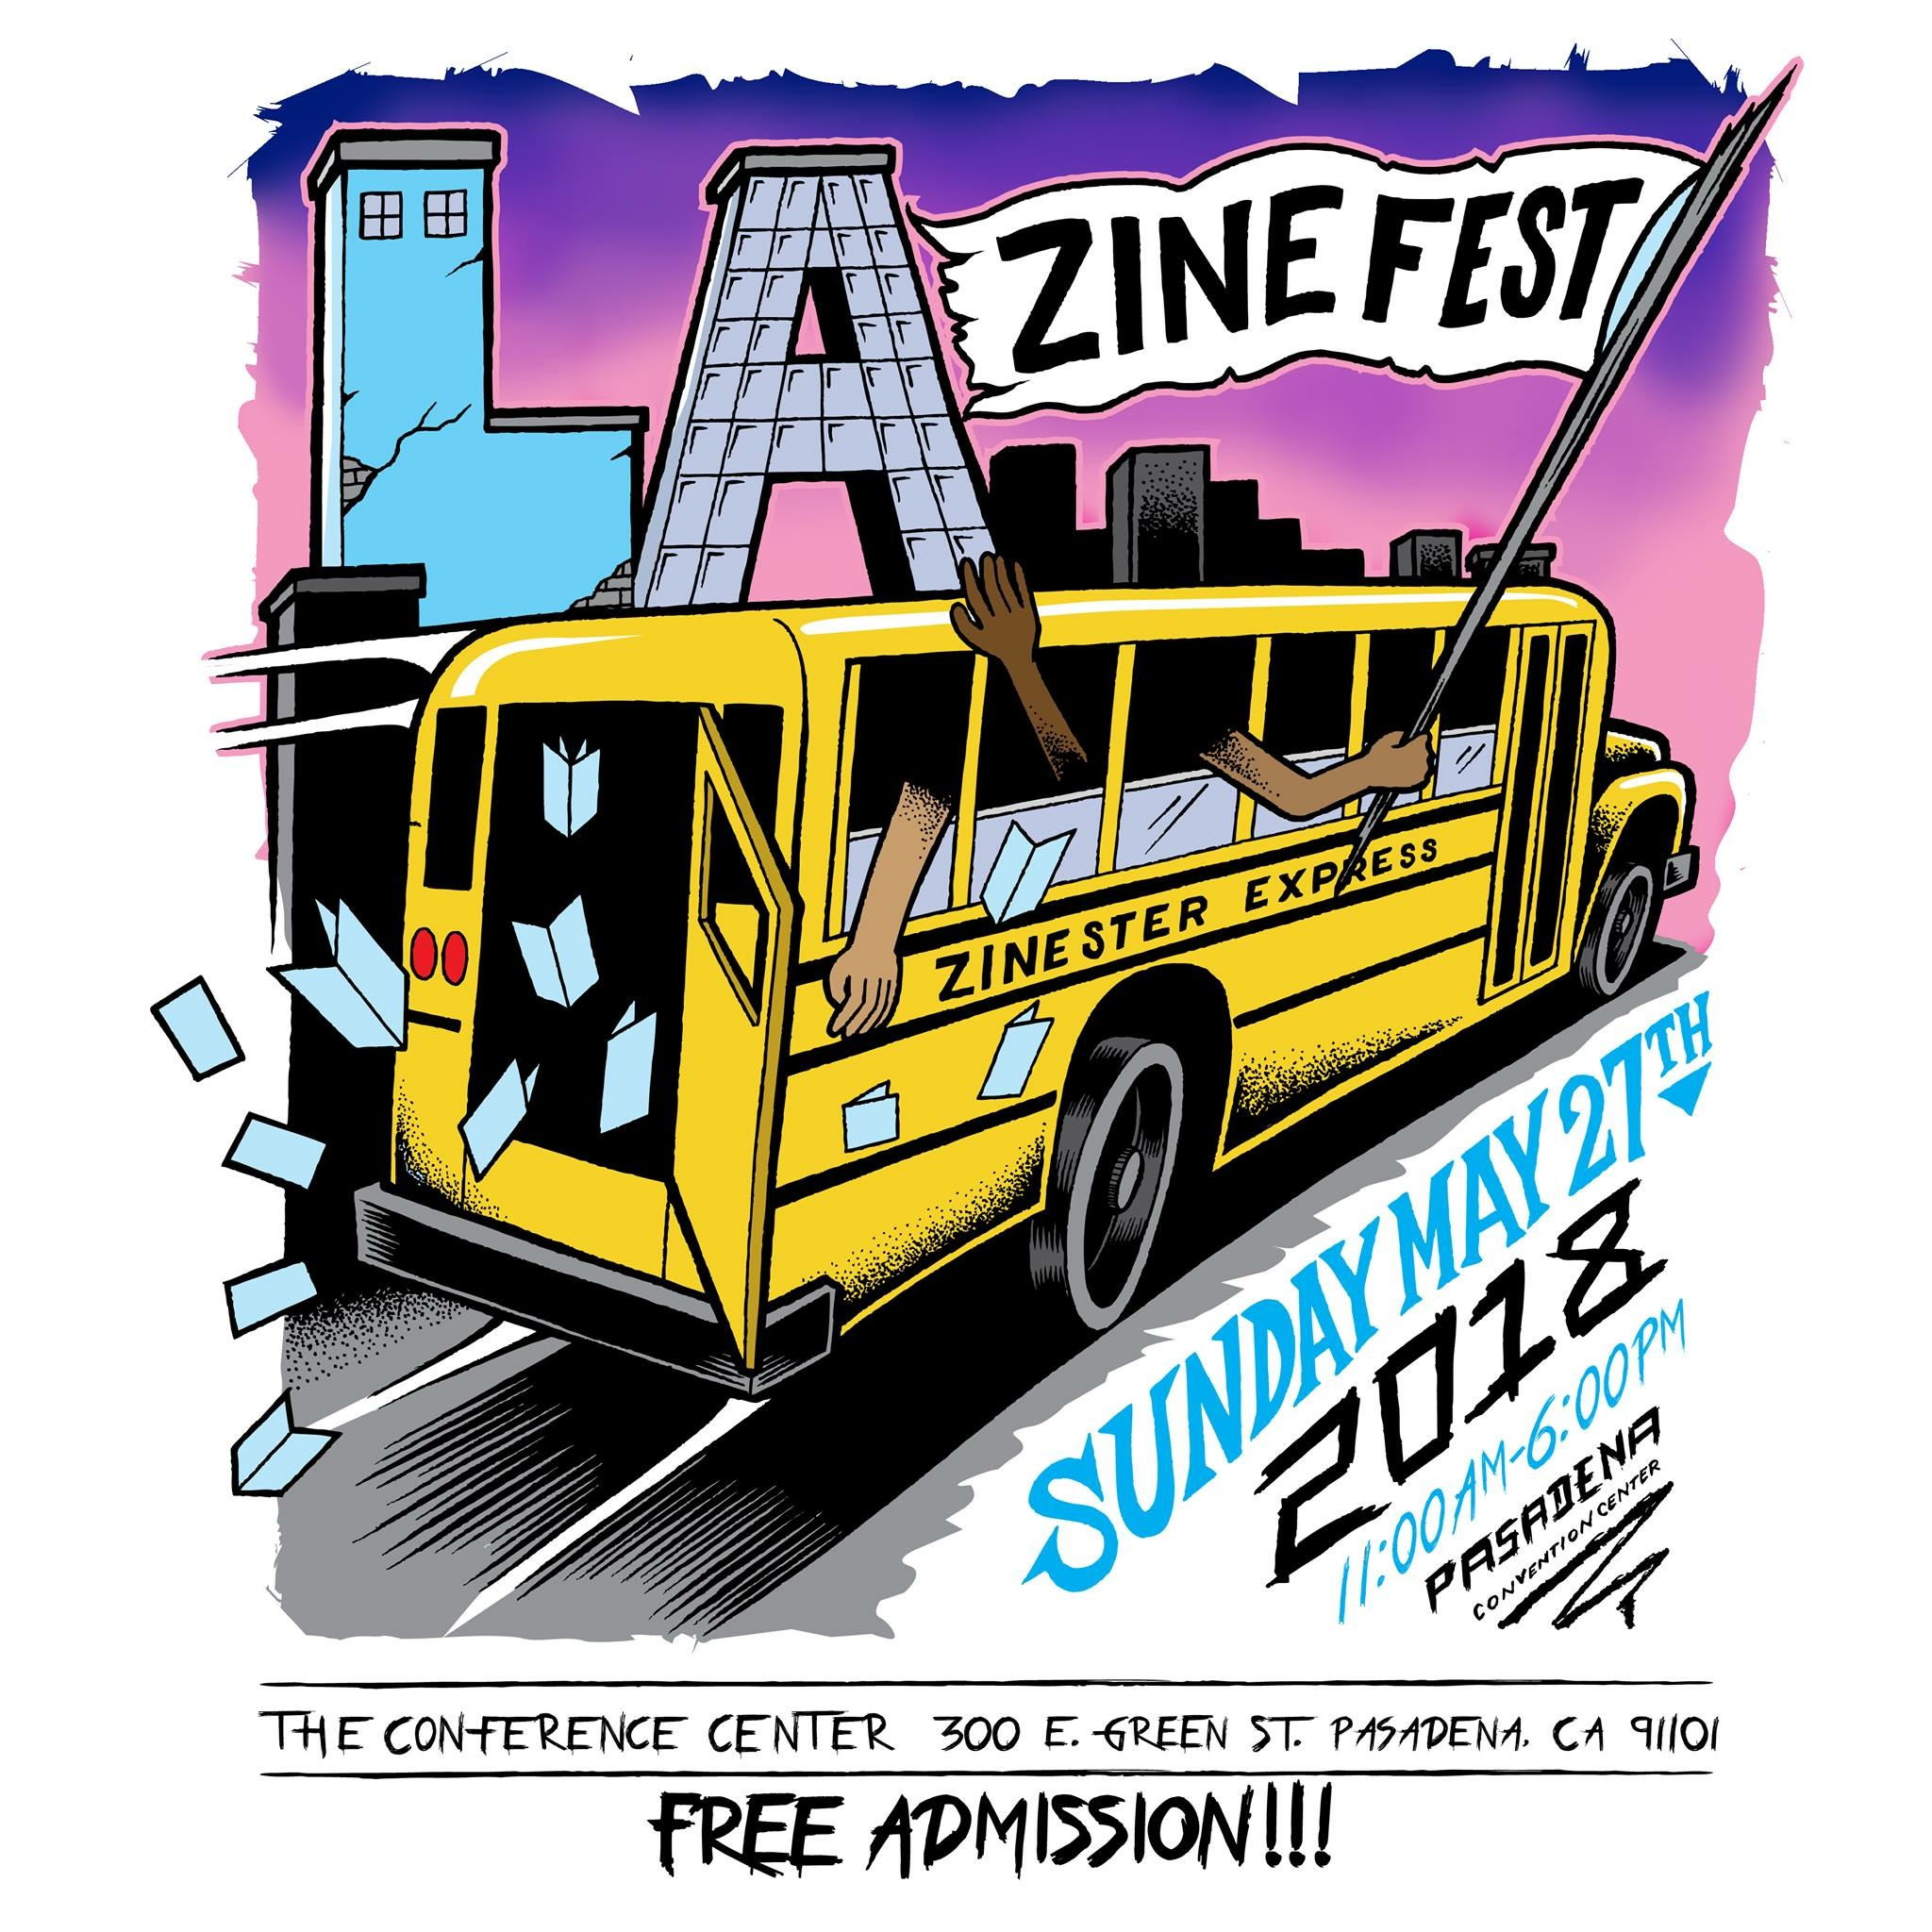 L.A. Zine Fest took place on May 27, 2018 at the Pasadena Convention Center. Poster designed by  Rich  of  Originals Por Vida .